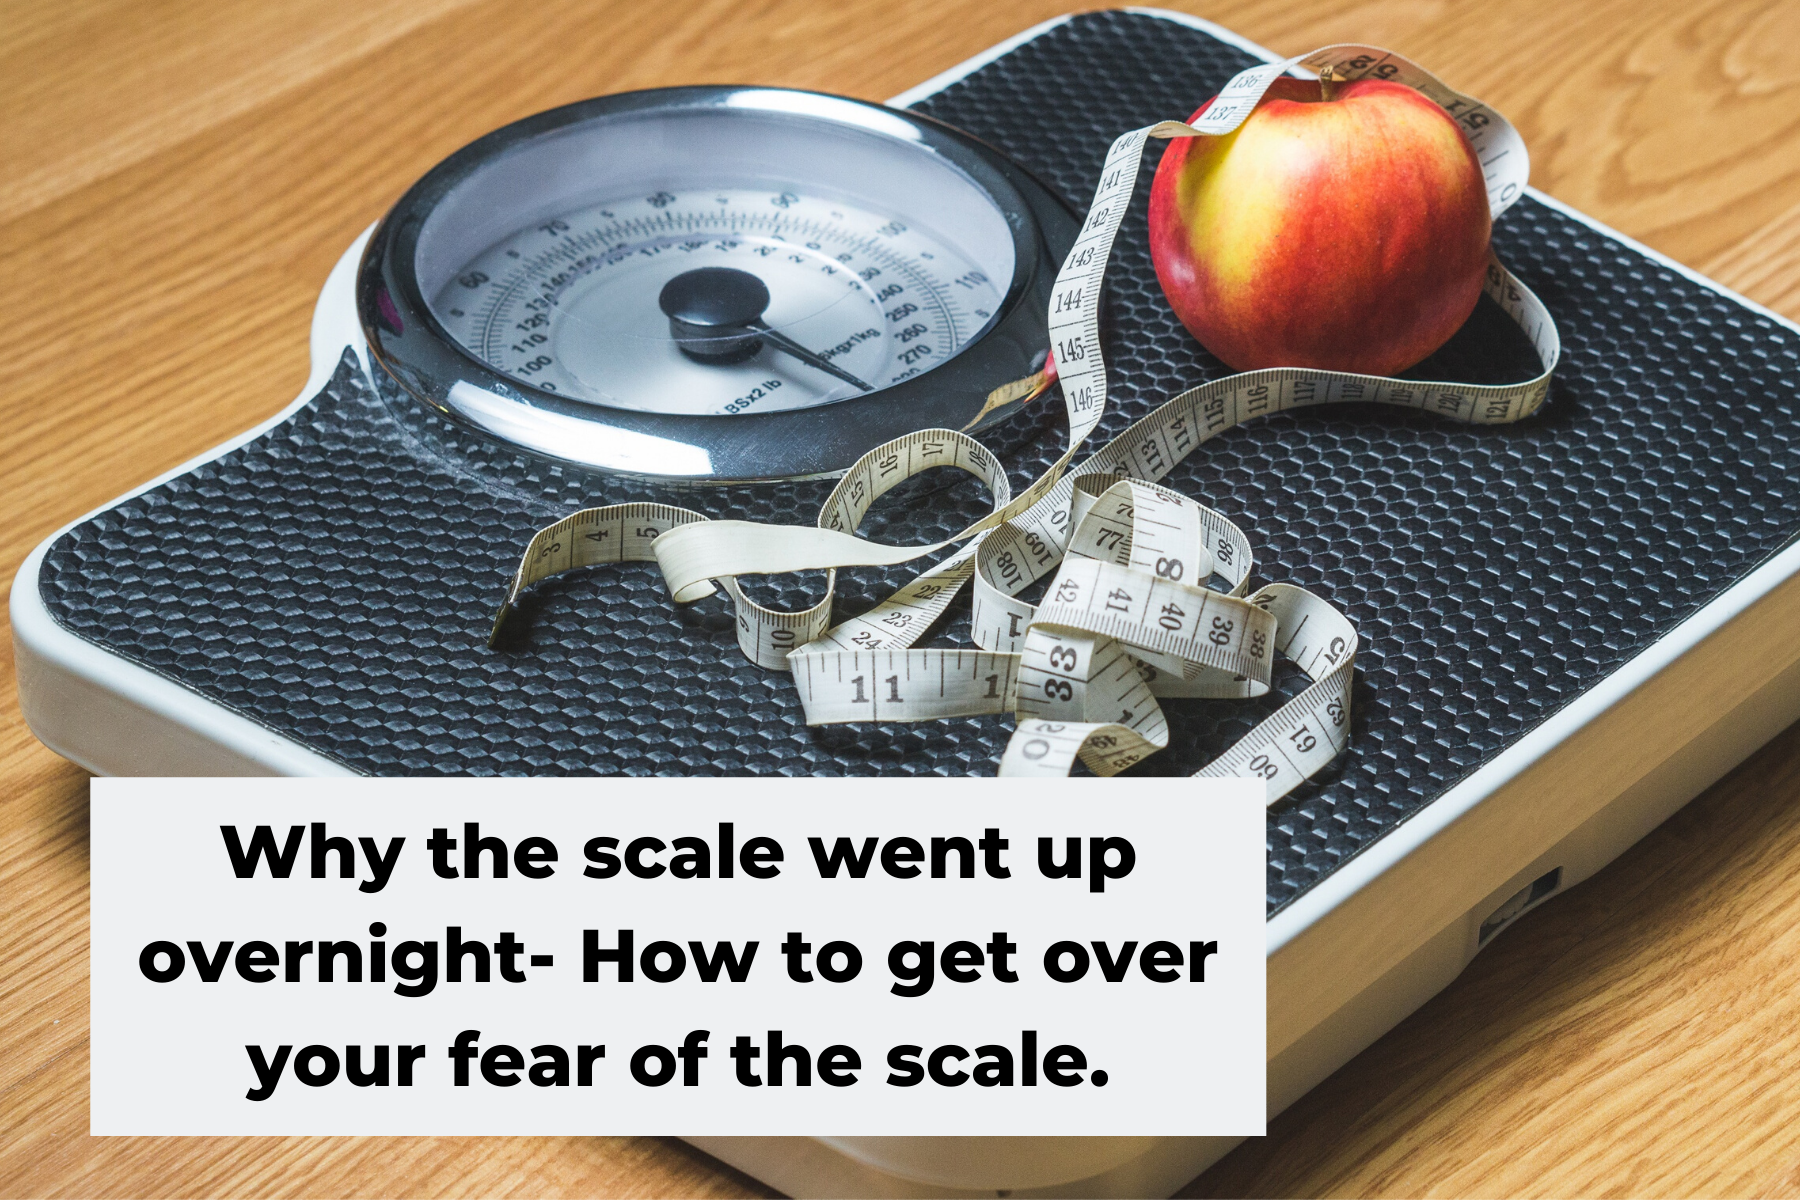 Why the scale went up overnight